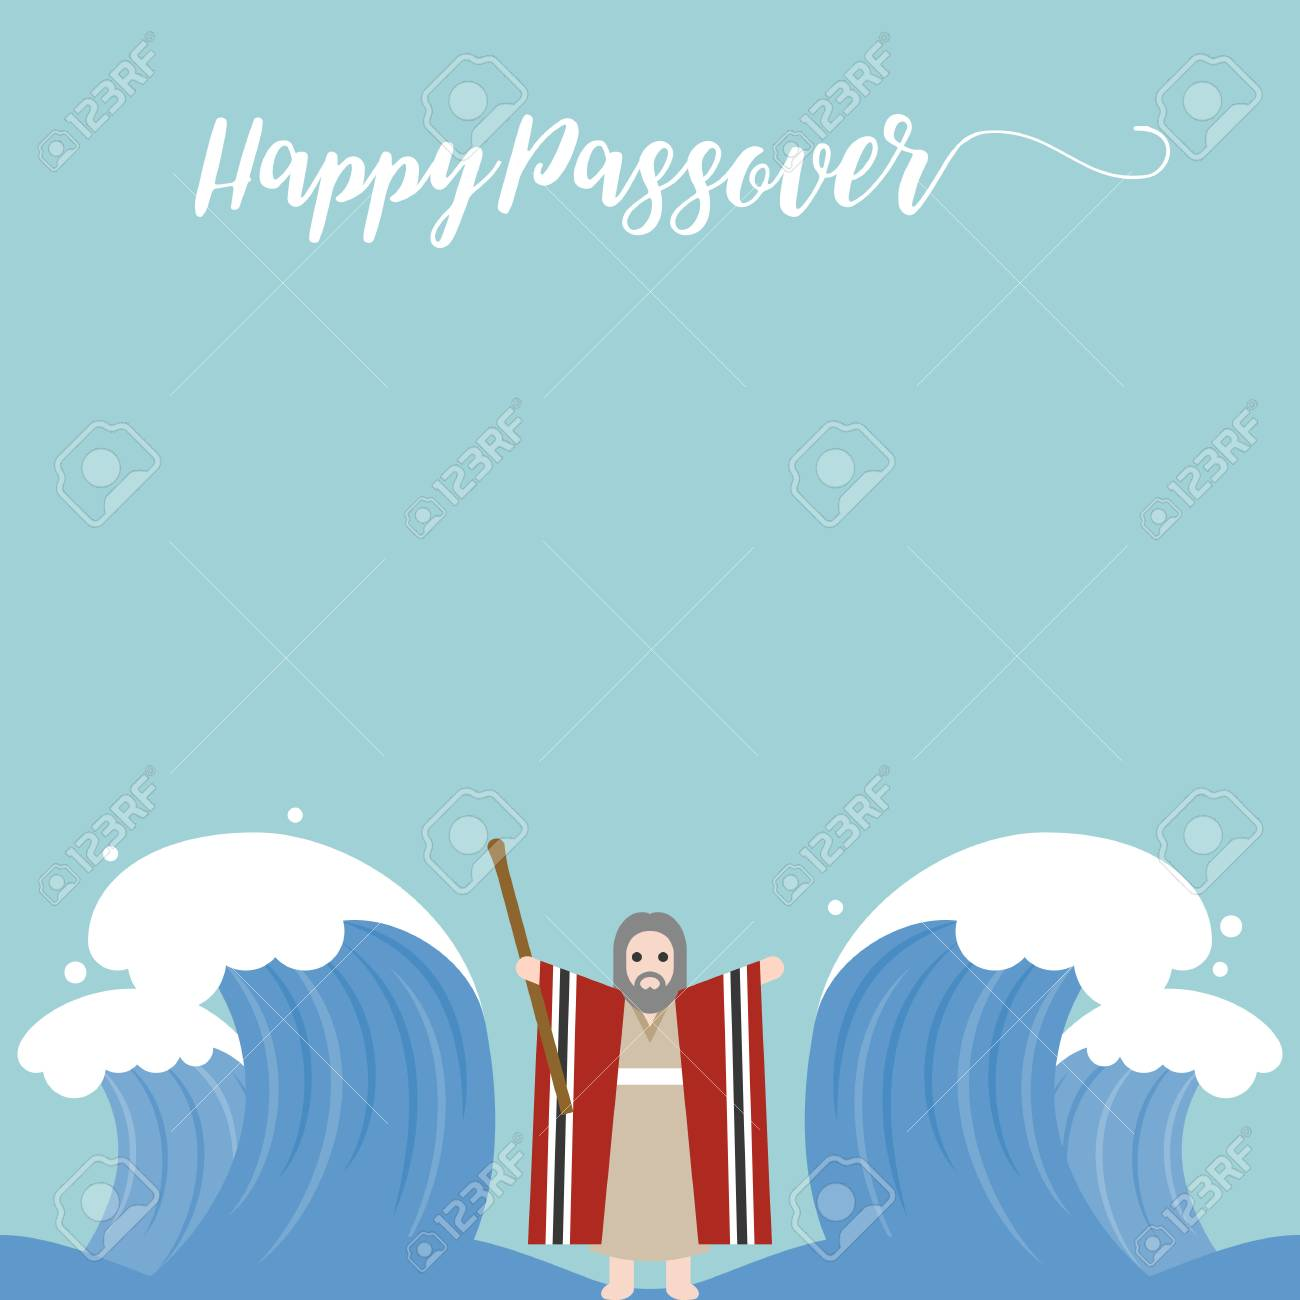 happy passover with seder plate, wine, matzah on brown background, flat design vector - 74306243